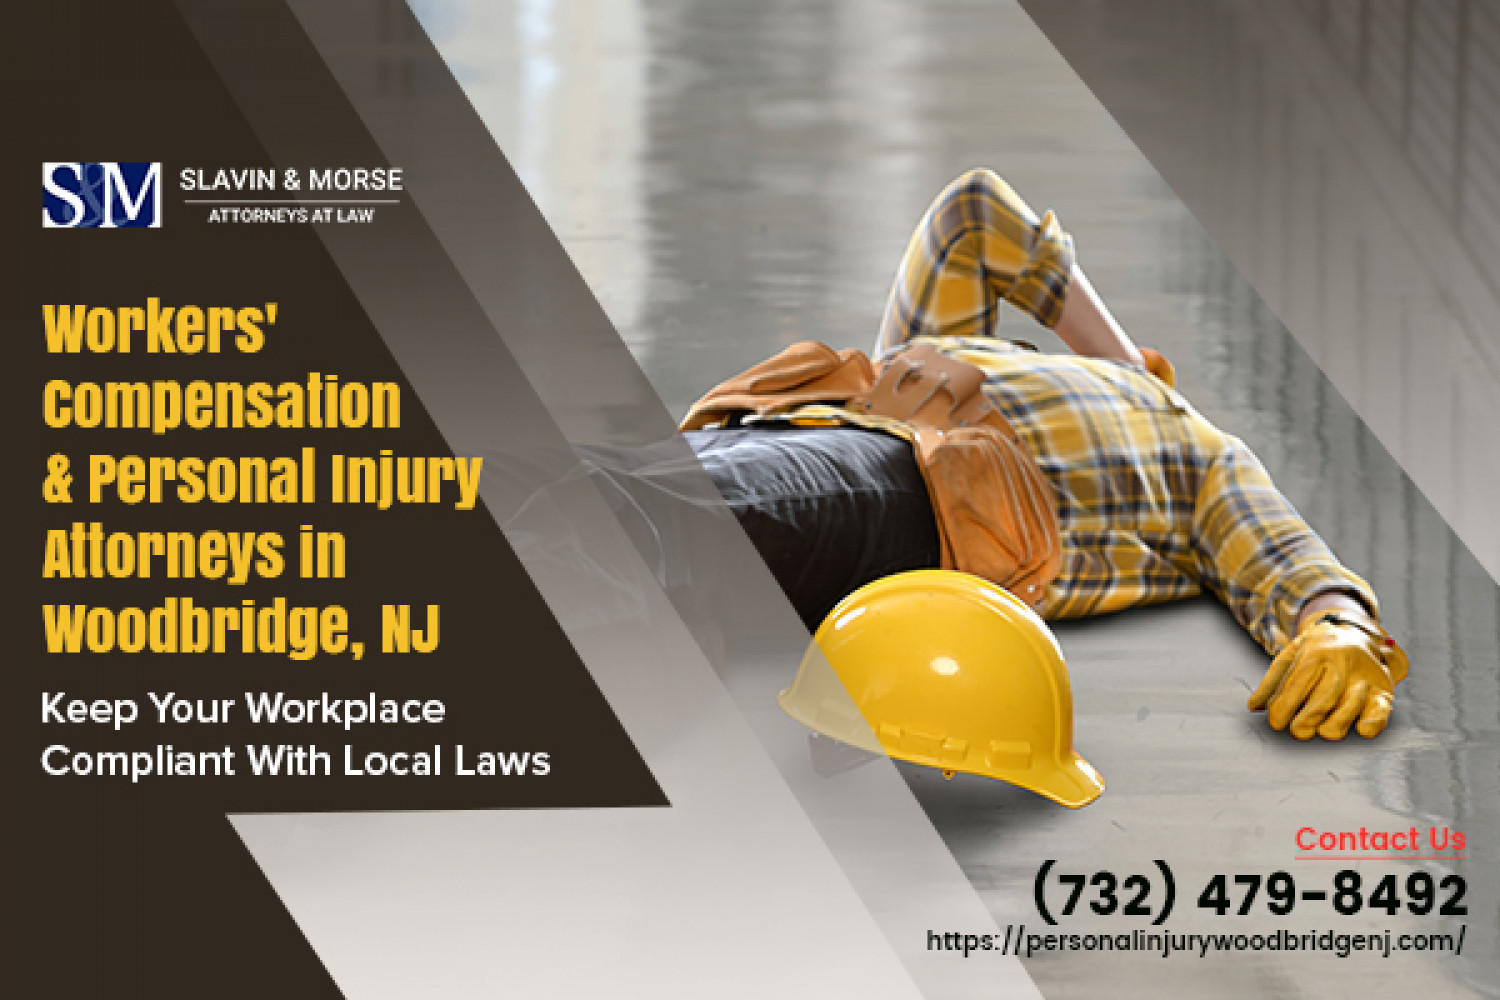 Hire workers compensation law firm in Woodbridge, NJ Infographic